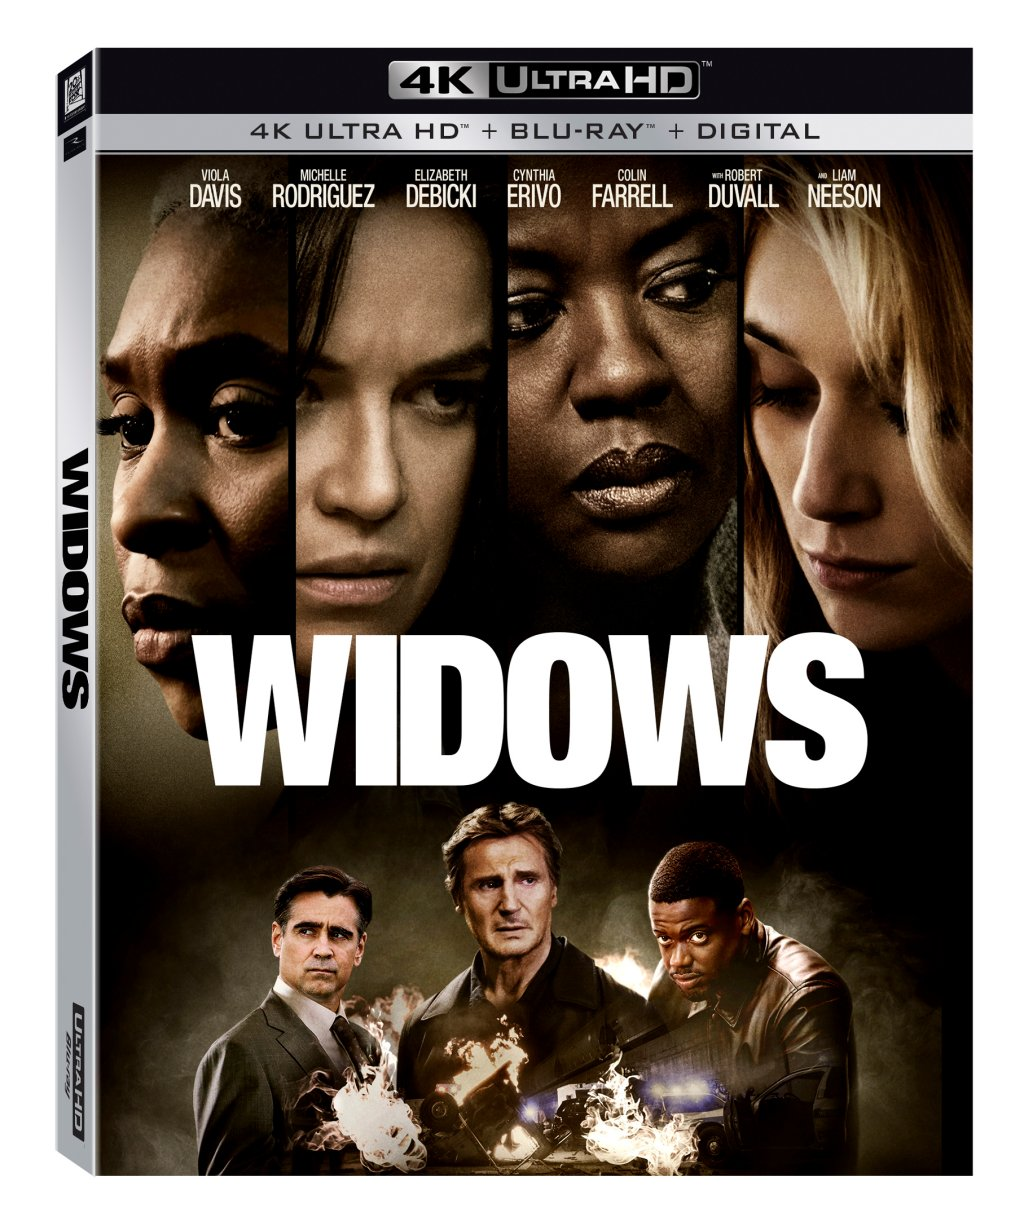 'Widows' DVD